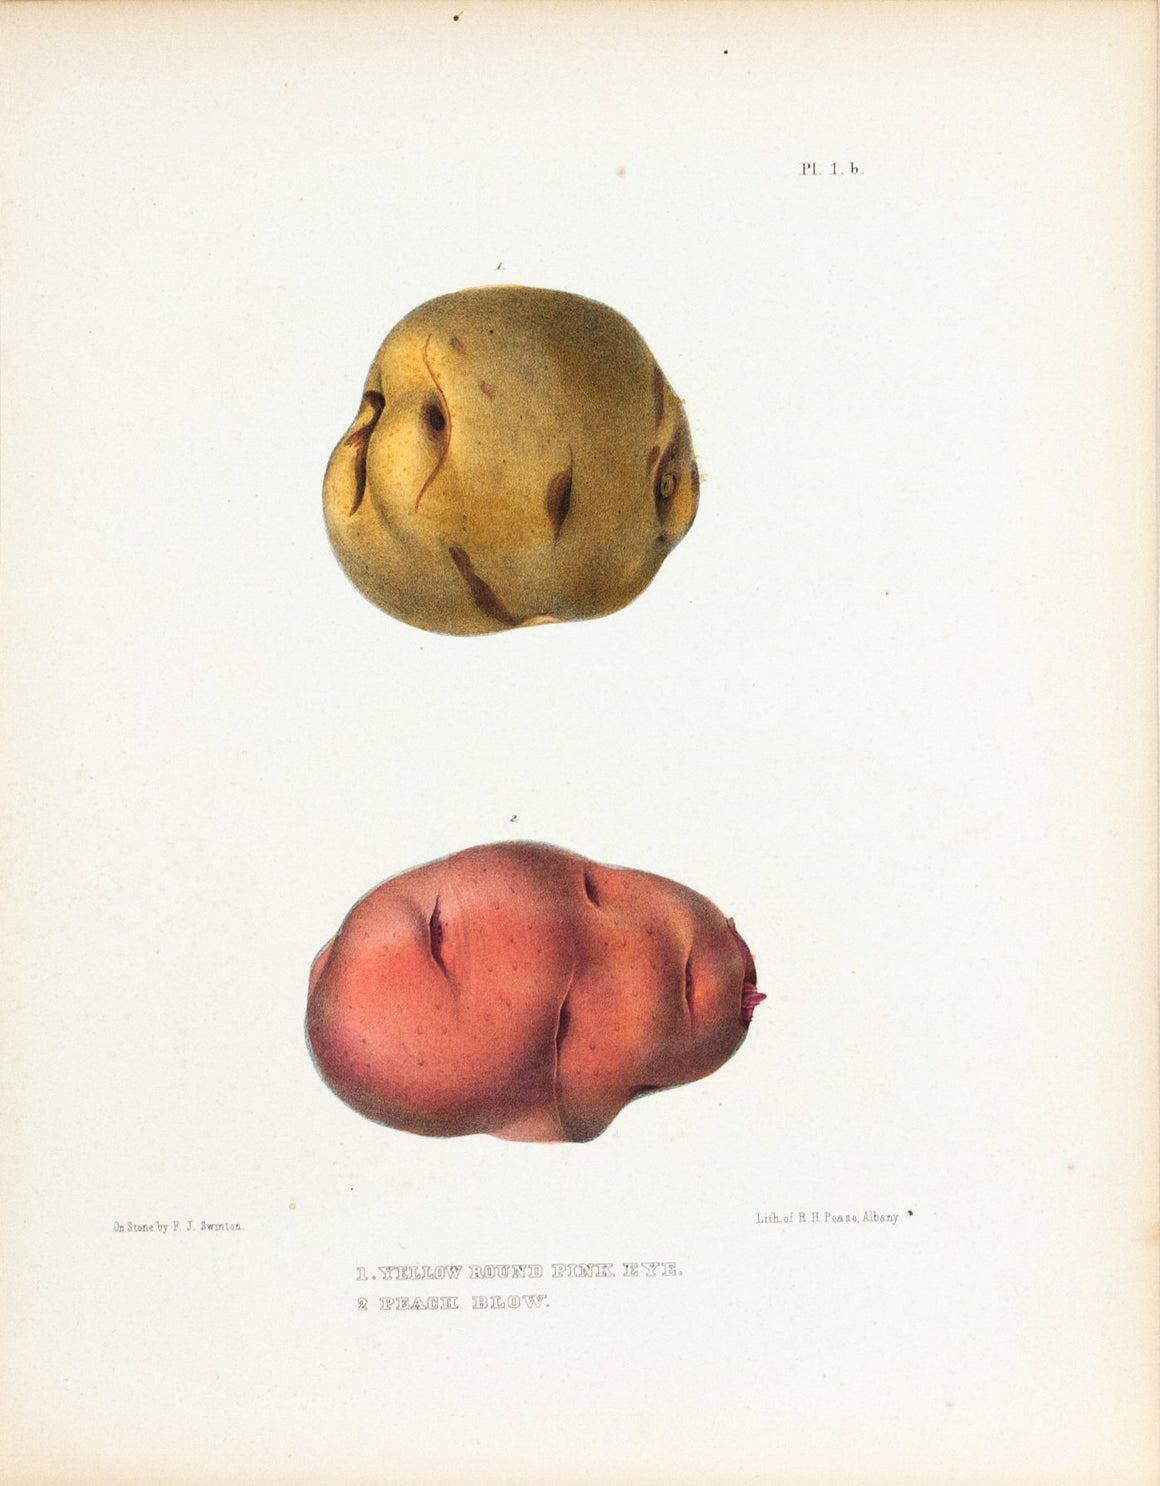 1849 Pl 1 b. Yellow Round Pink Eye, Peach Blow - Emmons